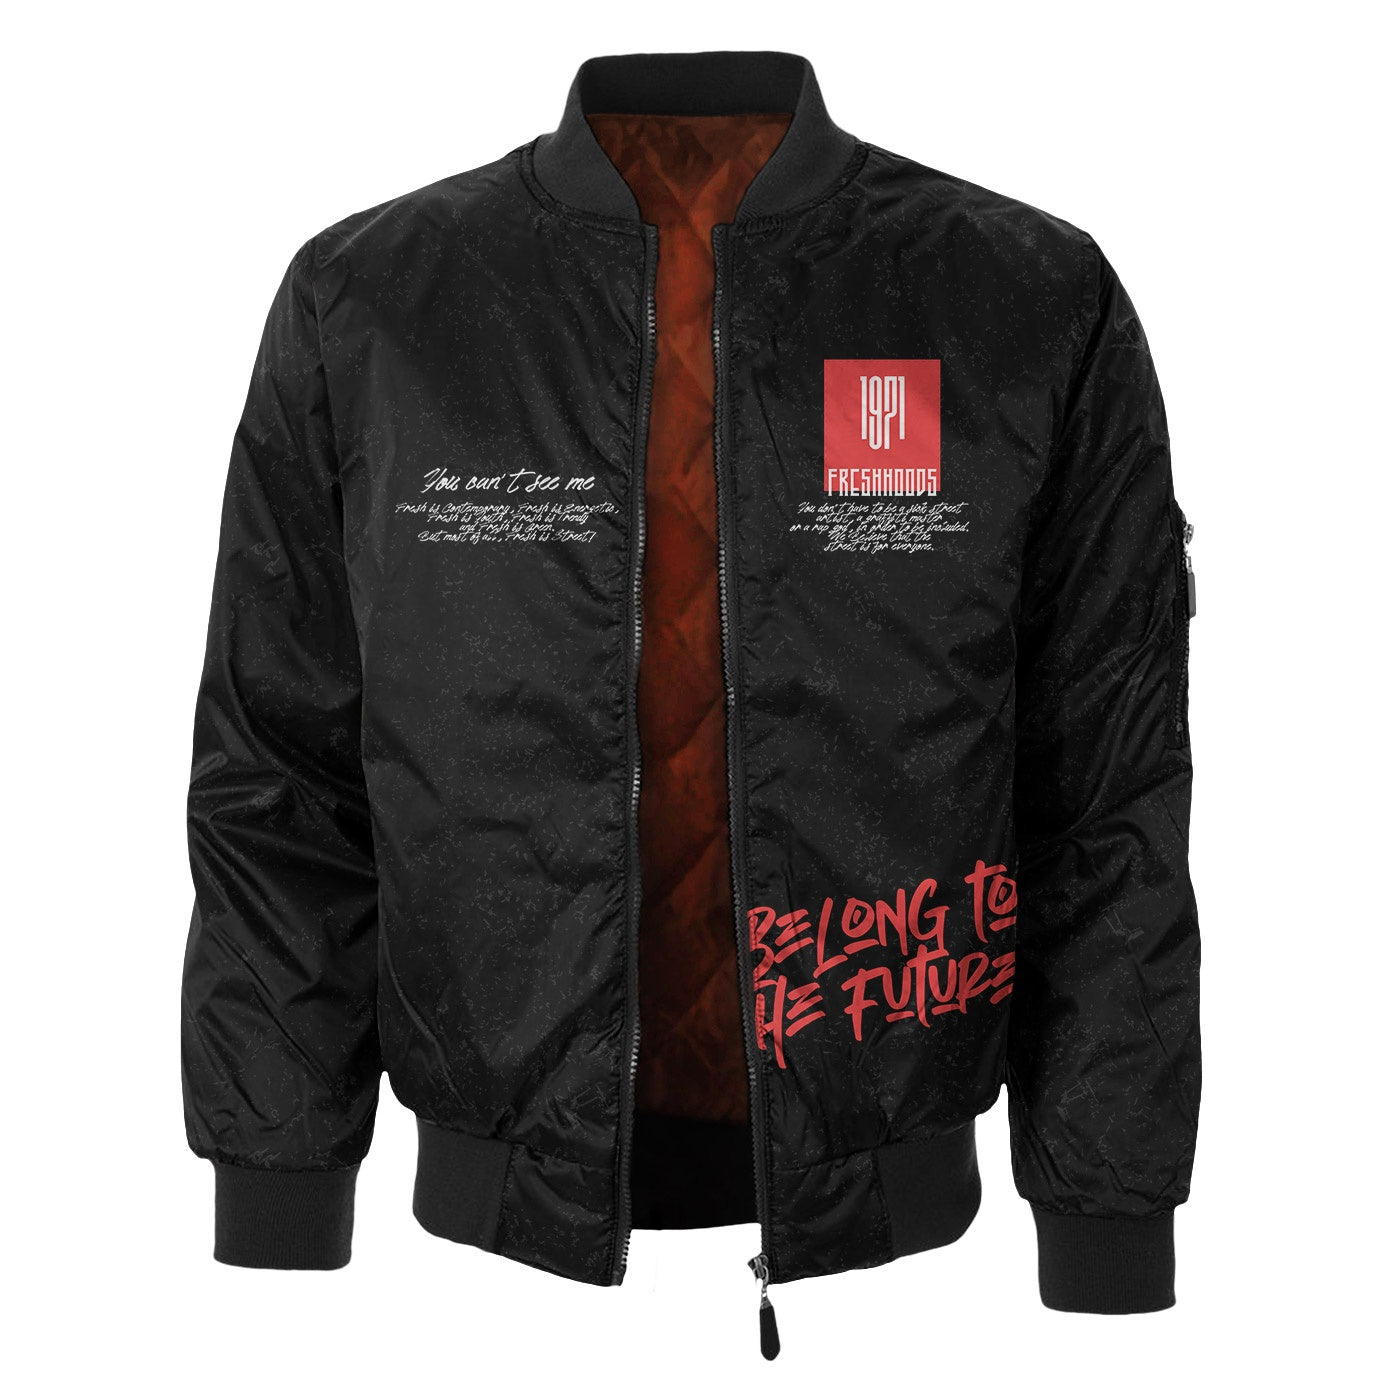 No Boundaries Bomber Jacket